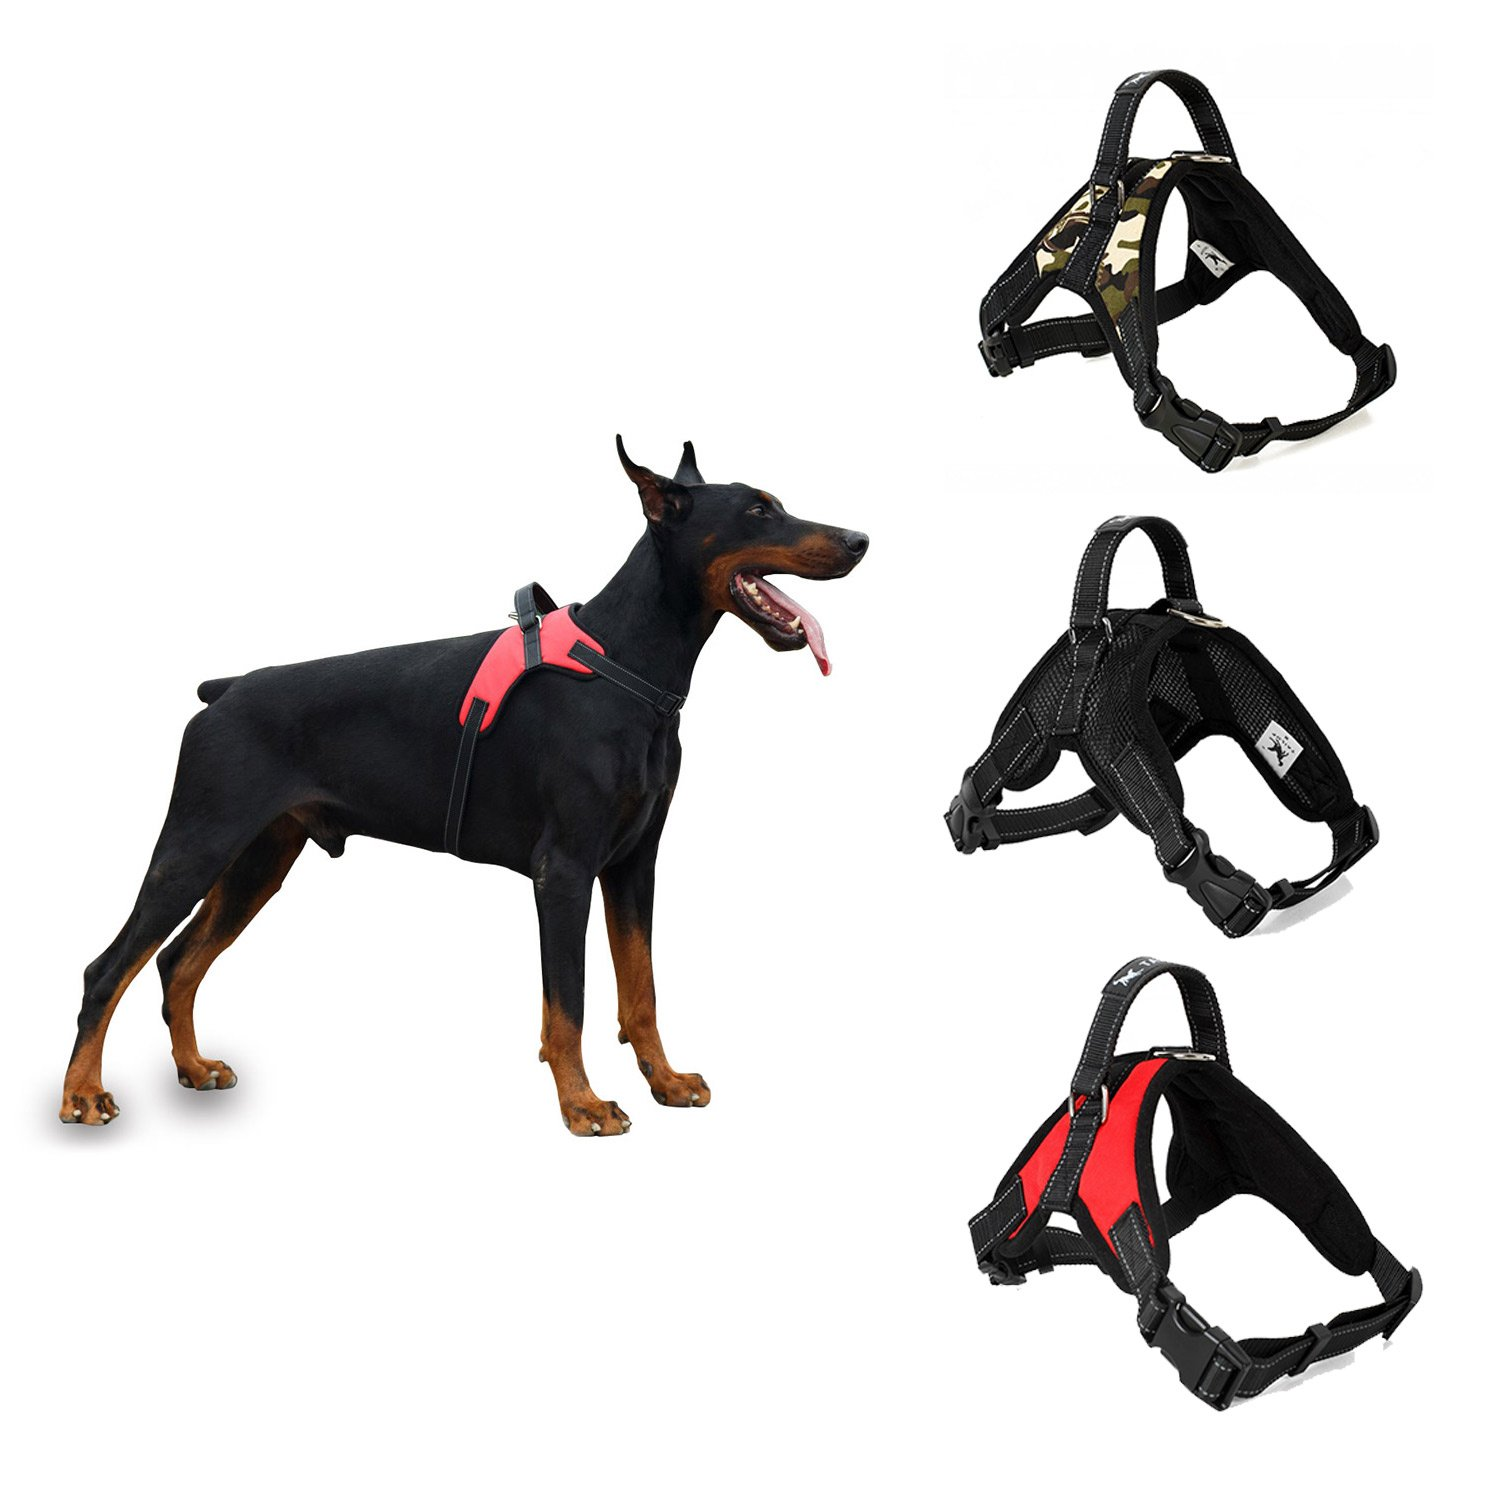 Black M Black M YLSing Dog Harness Easy Control for All Breeds Adjustable Harness with Handle Reflective No Pull No Choke Excellent for Training Hiking and More (M, Black)